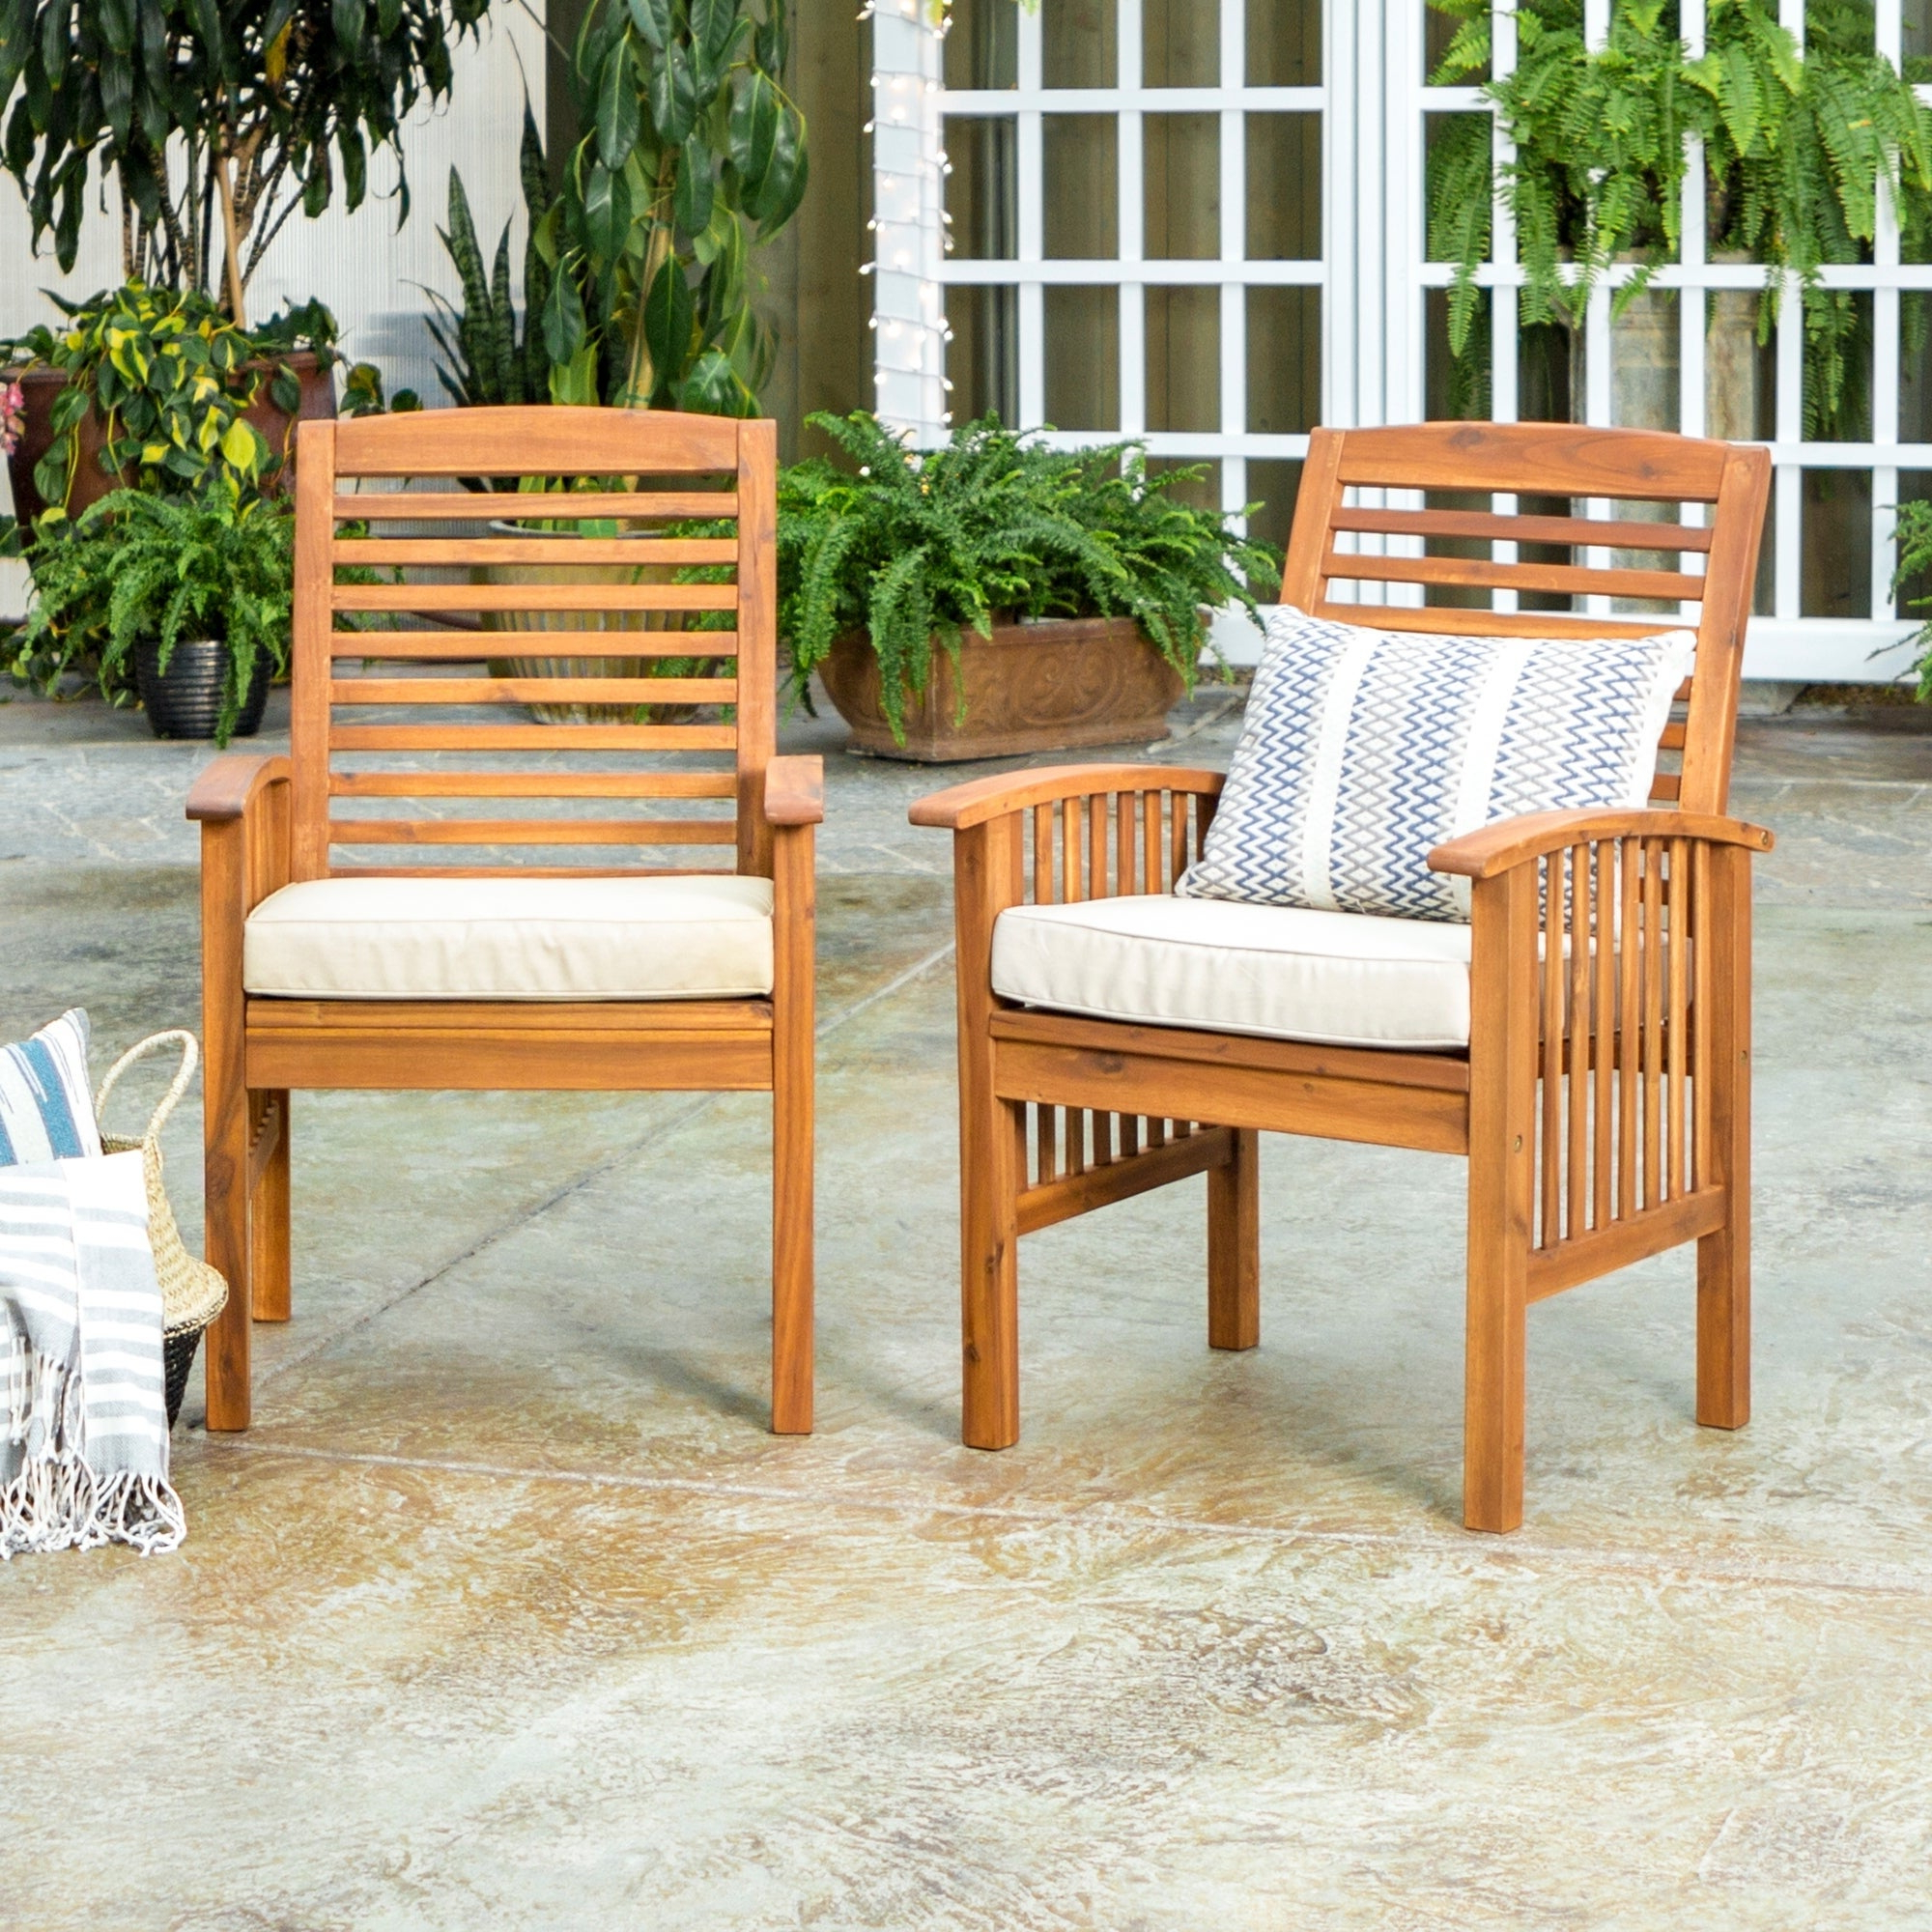 Havenside Home Surfside Outdoor Lounge Chairs For Latest Havenside Home Surfside Acacia Wood Patio Chairs (Set Of 2) – 24 X 20 X 37H (View 2 of 25)